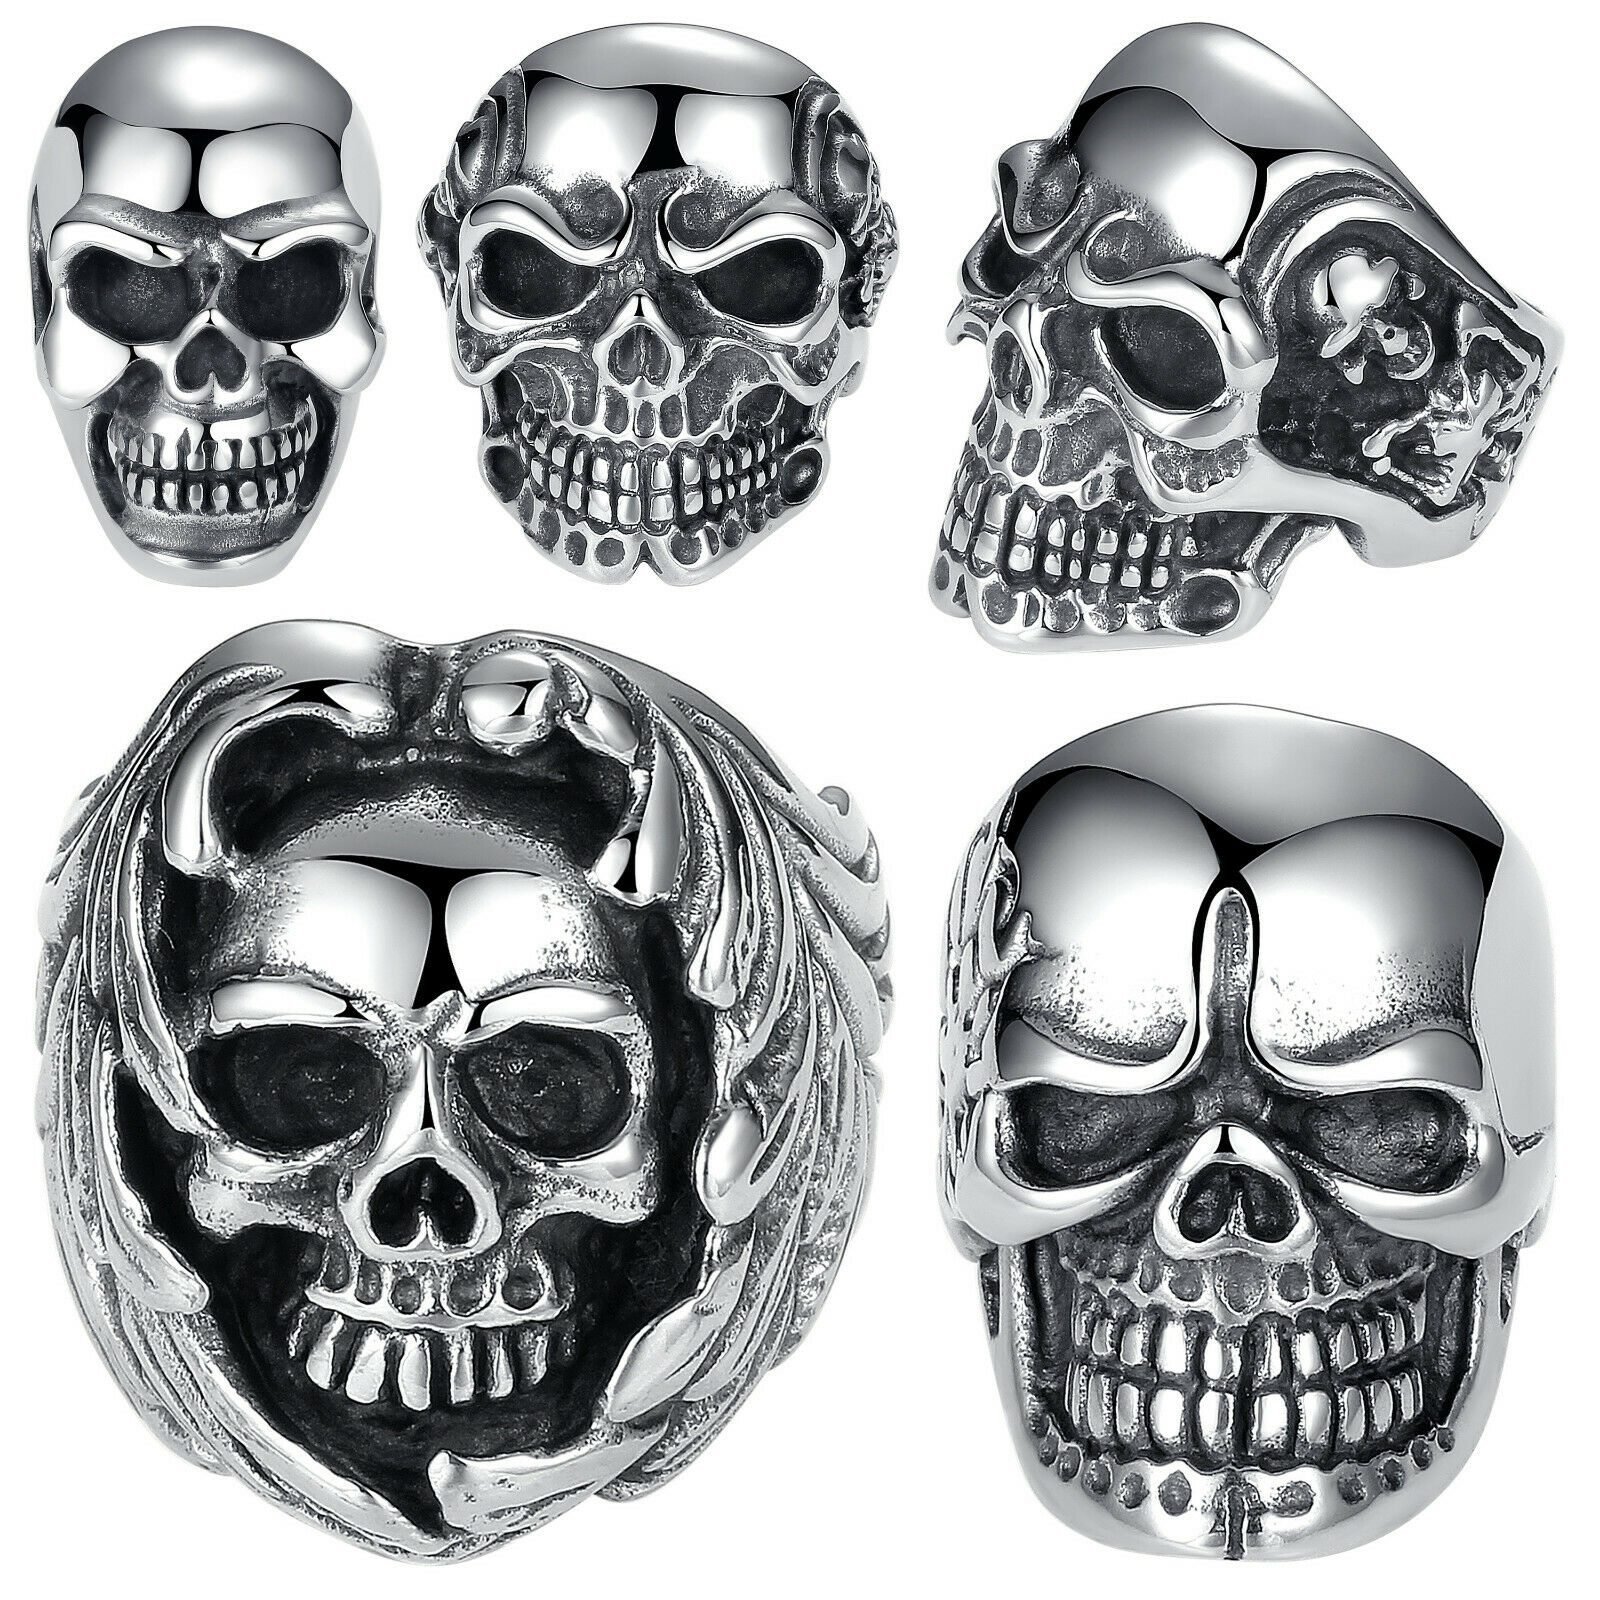 Punk Skull Vintage Ring For Men Steampunk Retro Hollow Stainless Steel Rings Gothic Male Jewelry